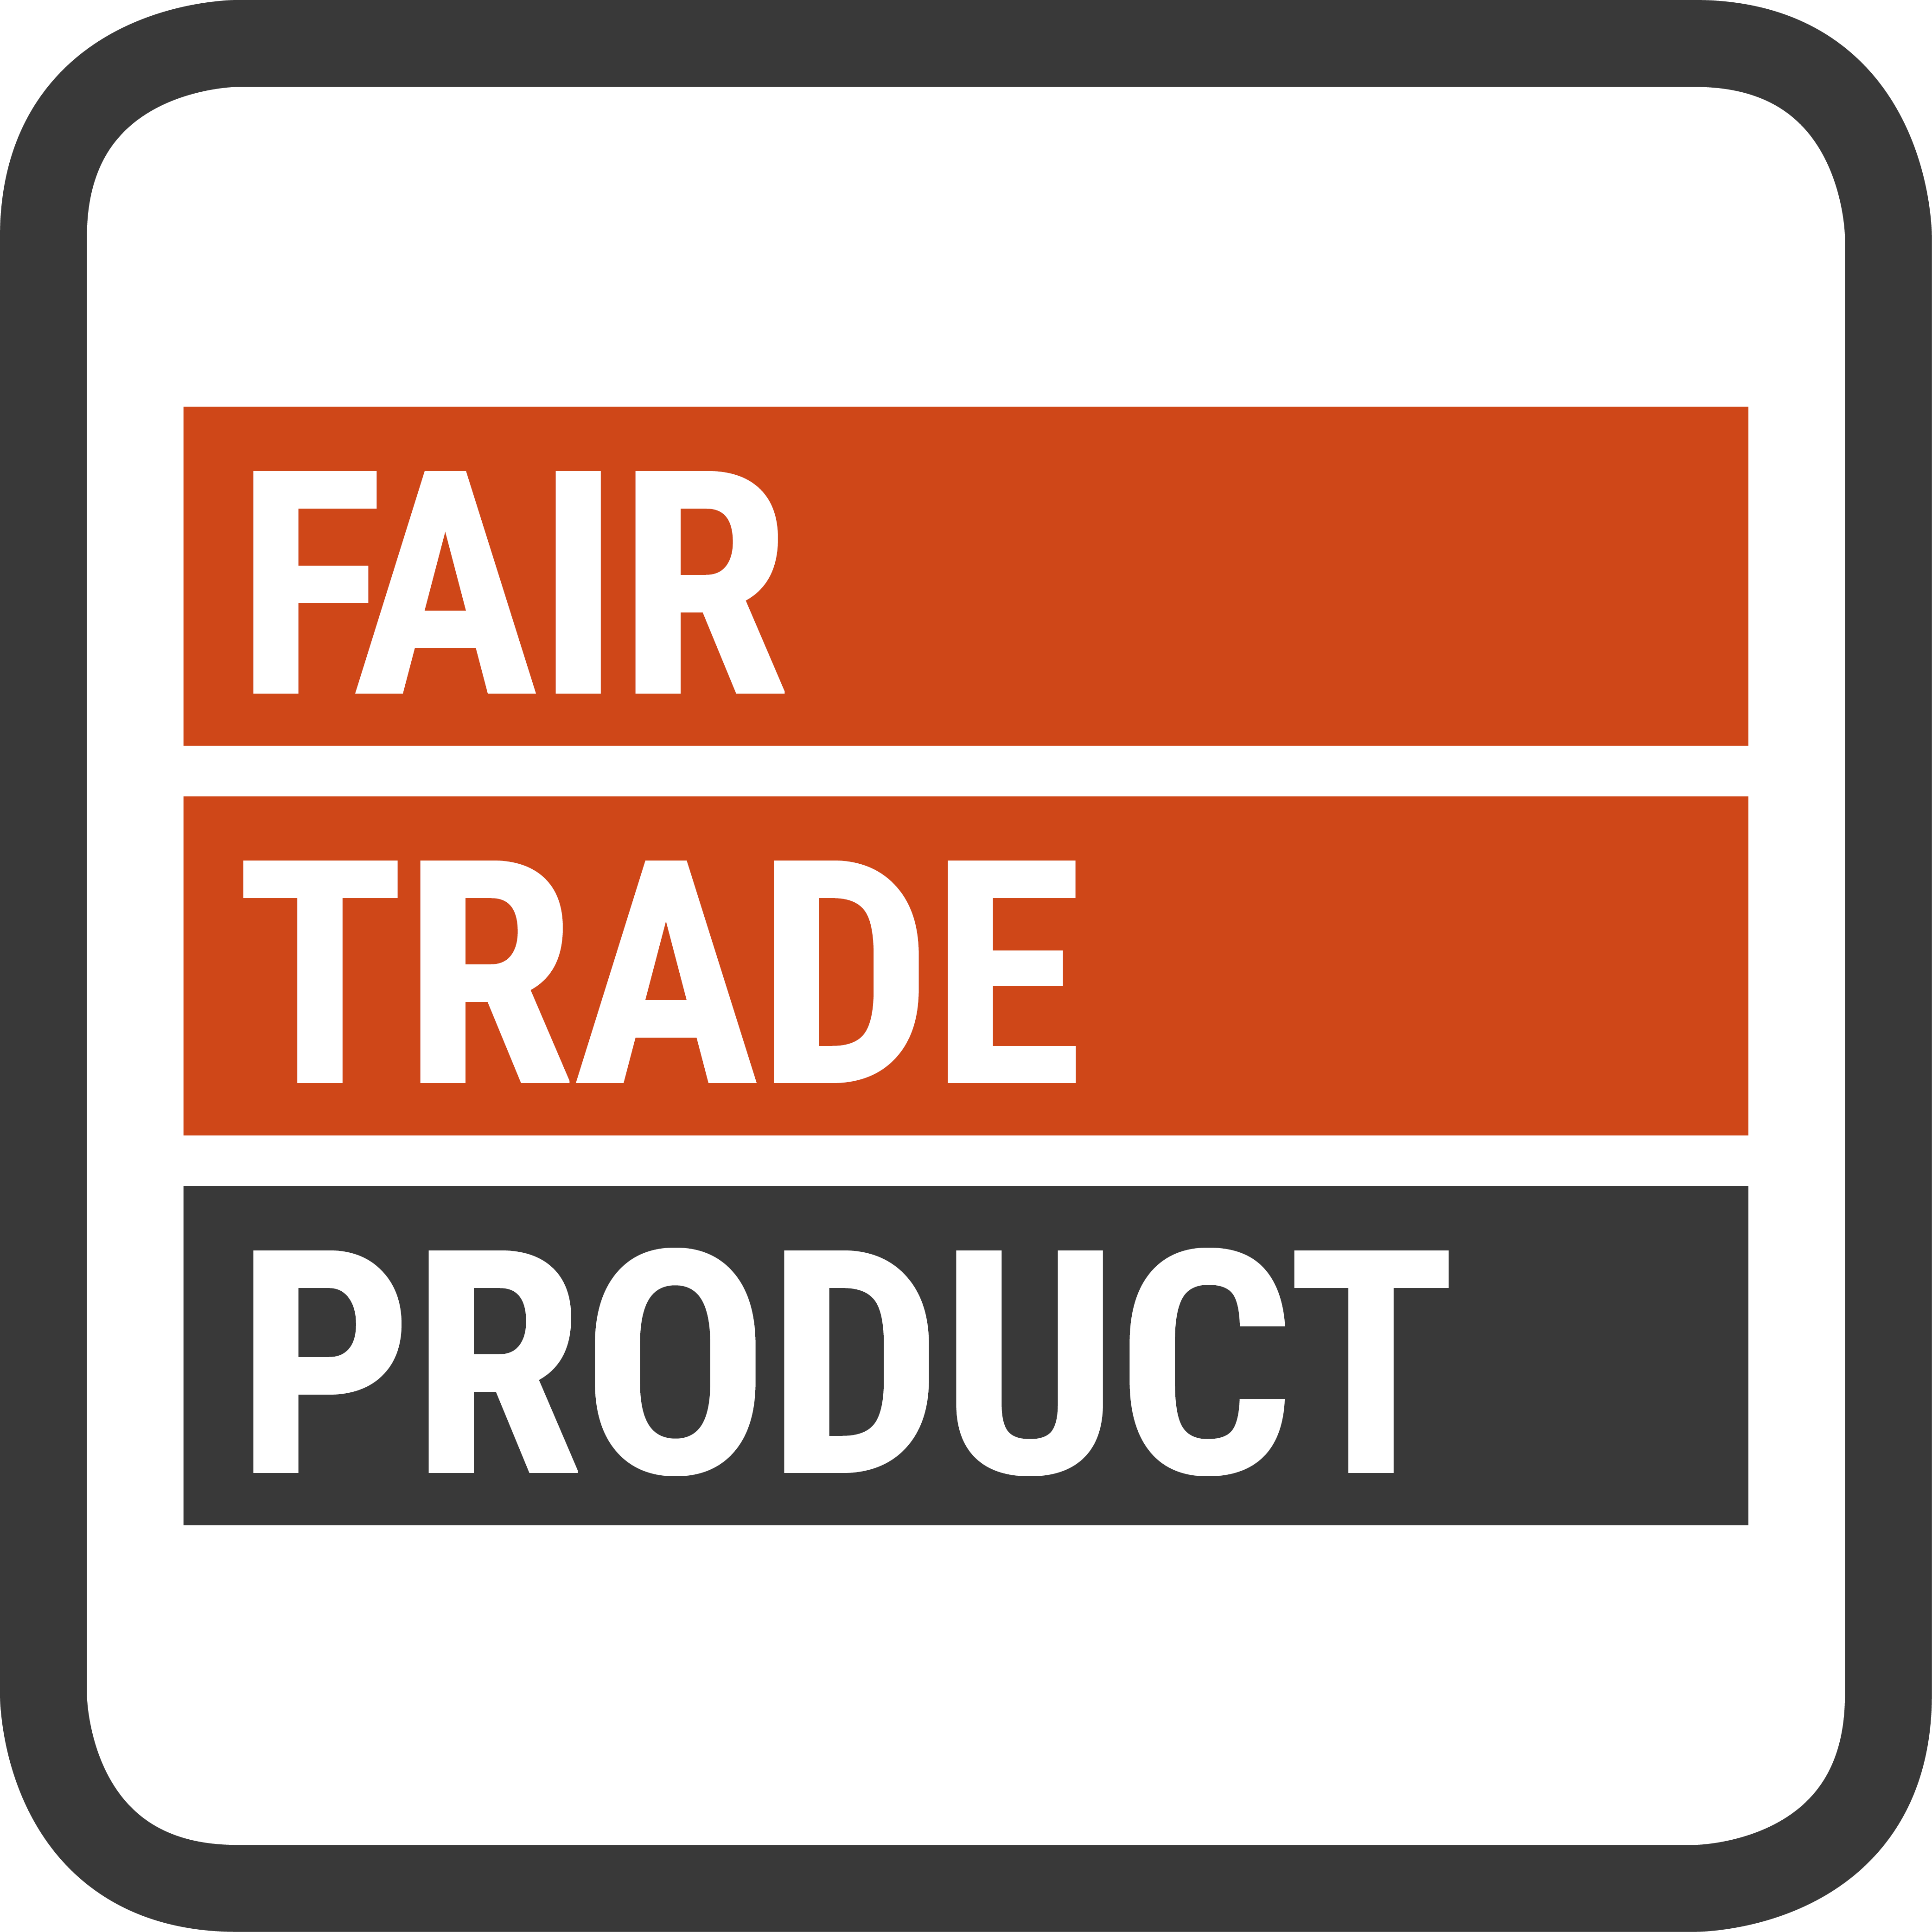 Fair Trade Product